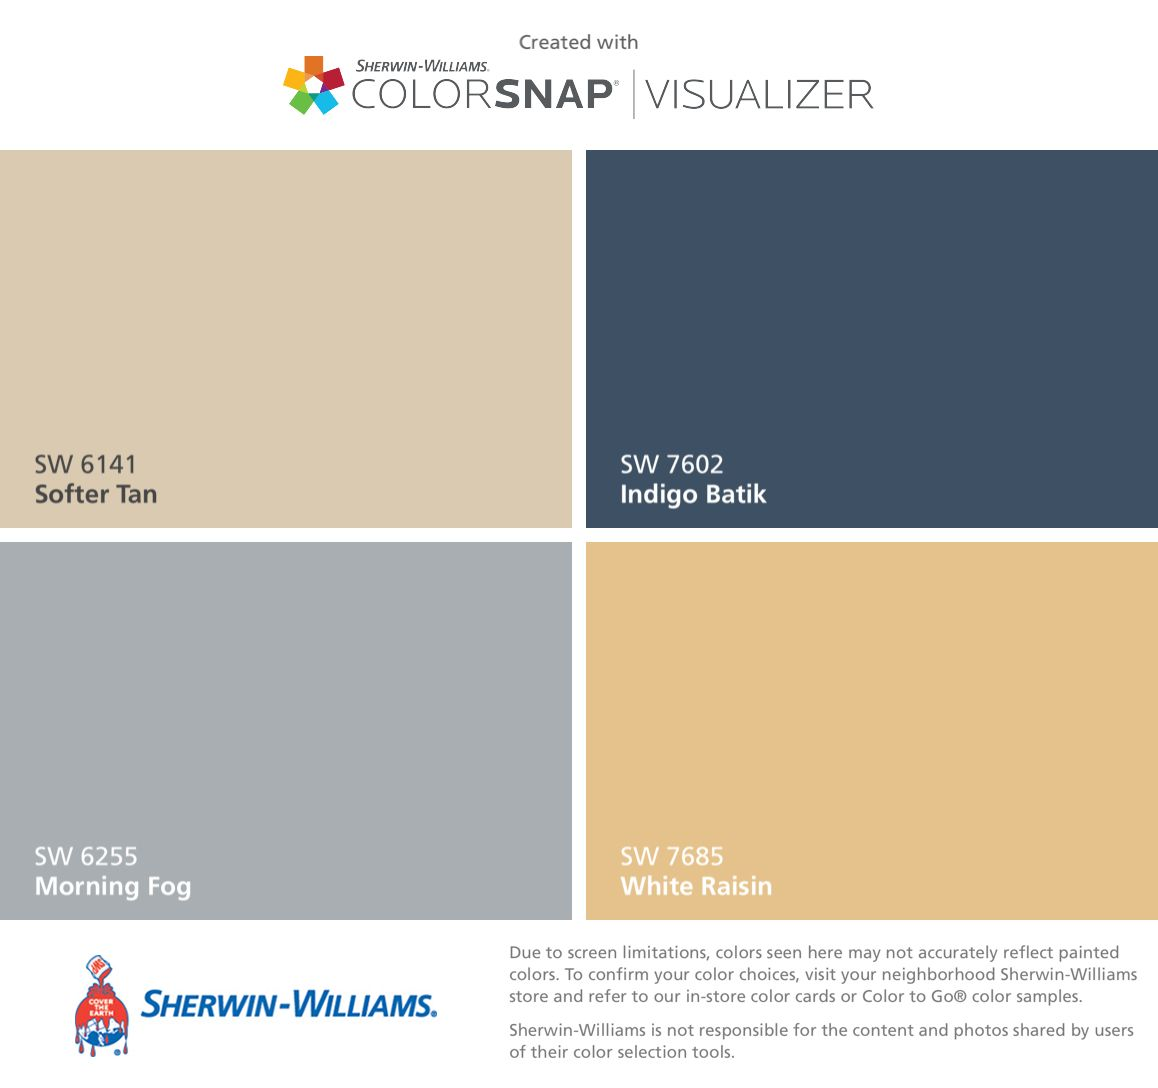 Downstairs Color Plan Sherwin Williams Softer Tan Sw 6141 Morning Fog 6255 And White Raisin 7685 Will Likely Replace The Indigo Batik